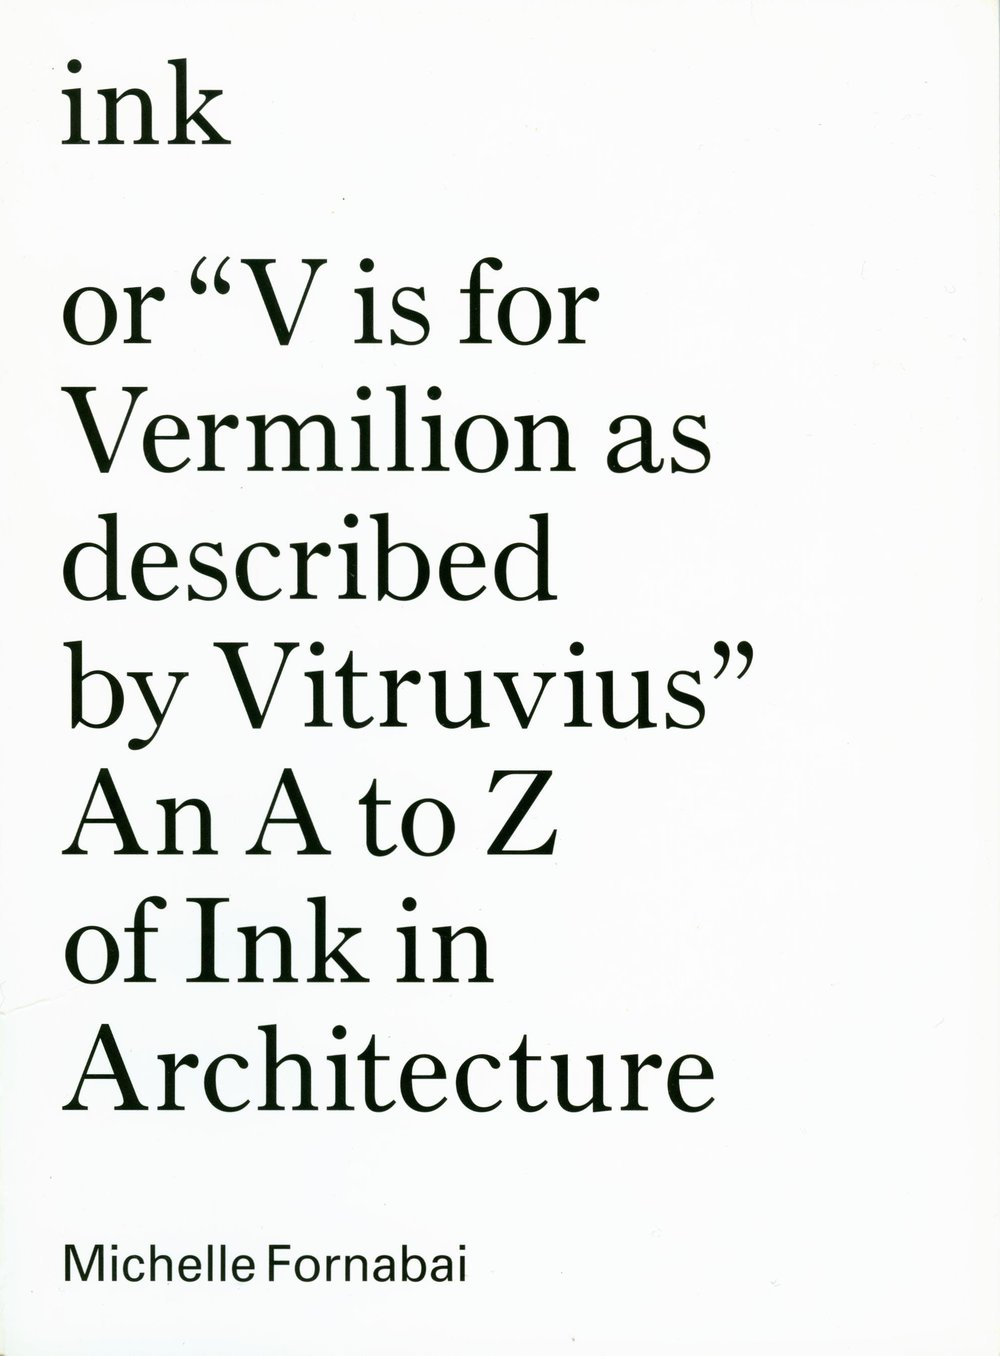 """INVISIBLE INK"" AN A TO Z OF INK IN ARCHITECTURE ILA BERMAN"